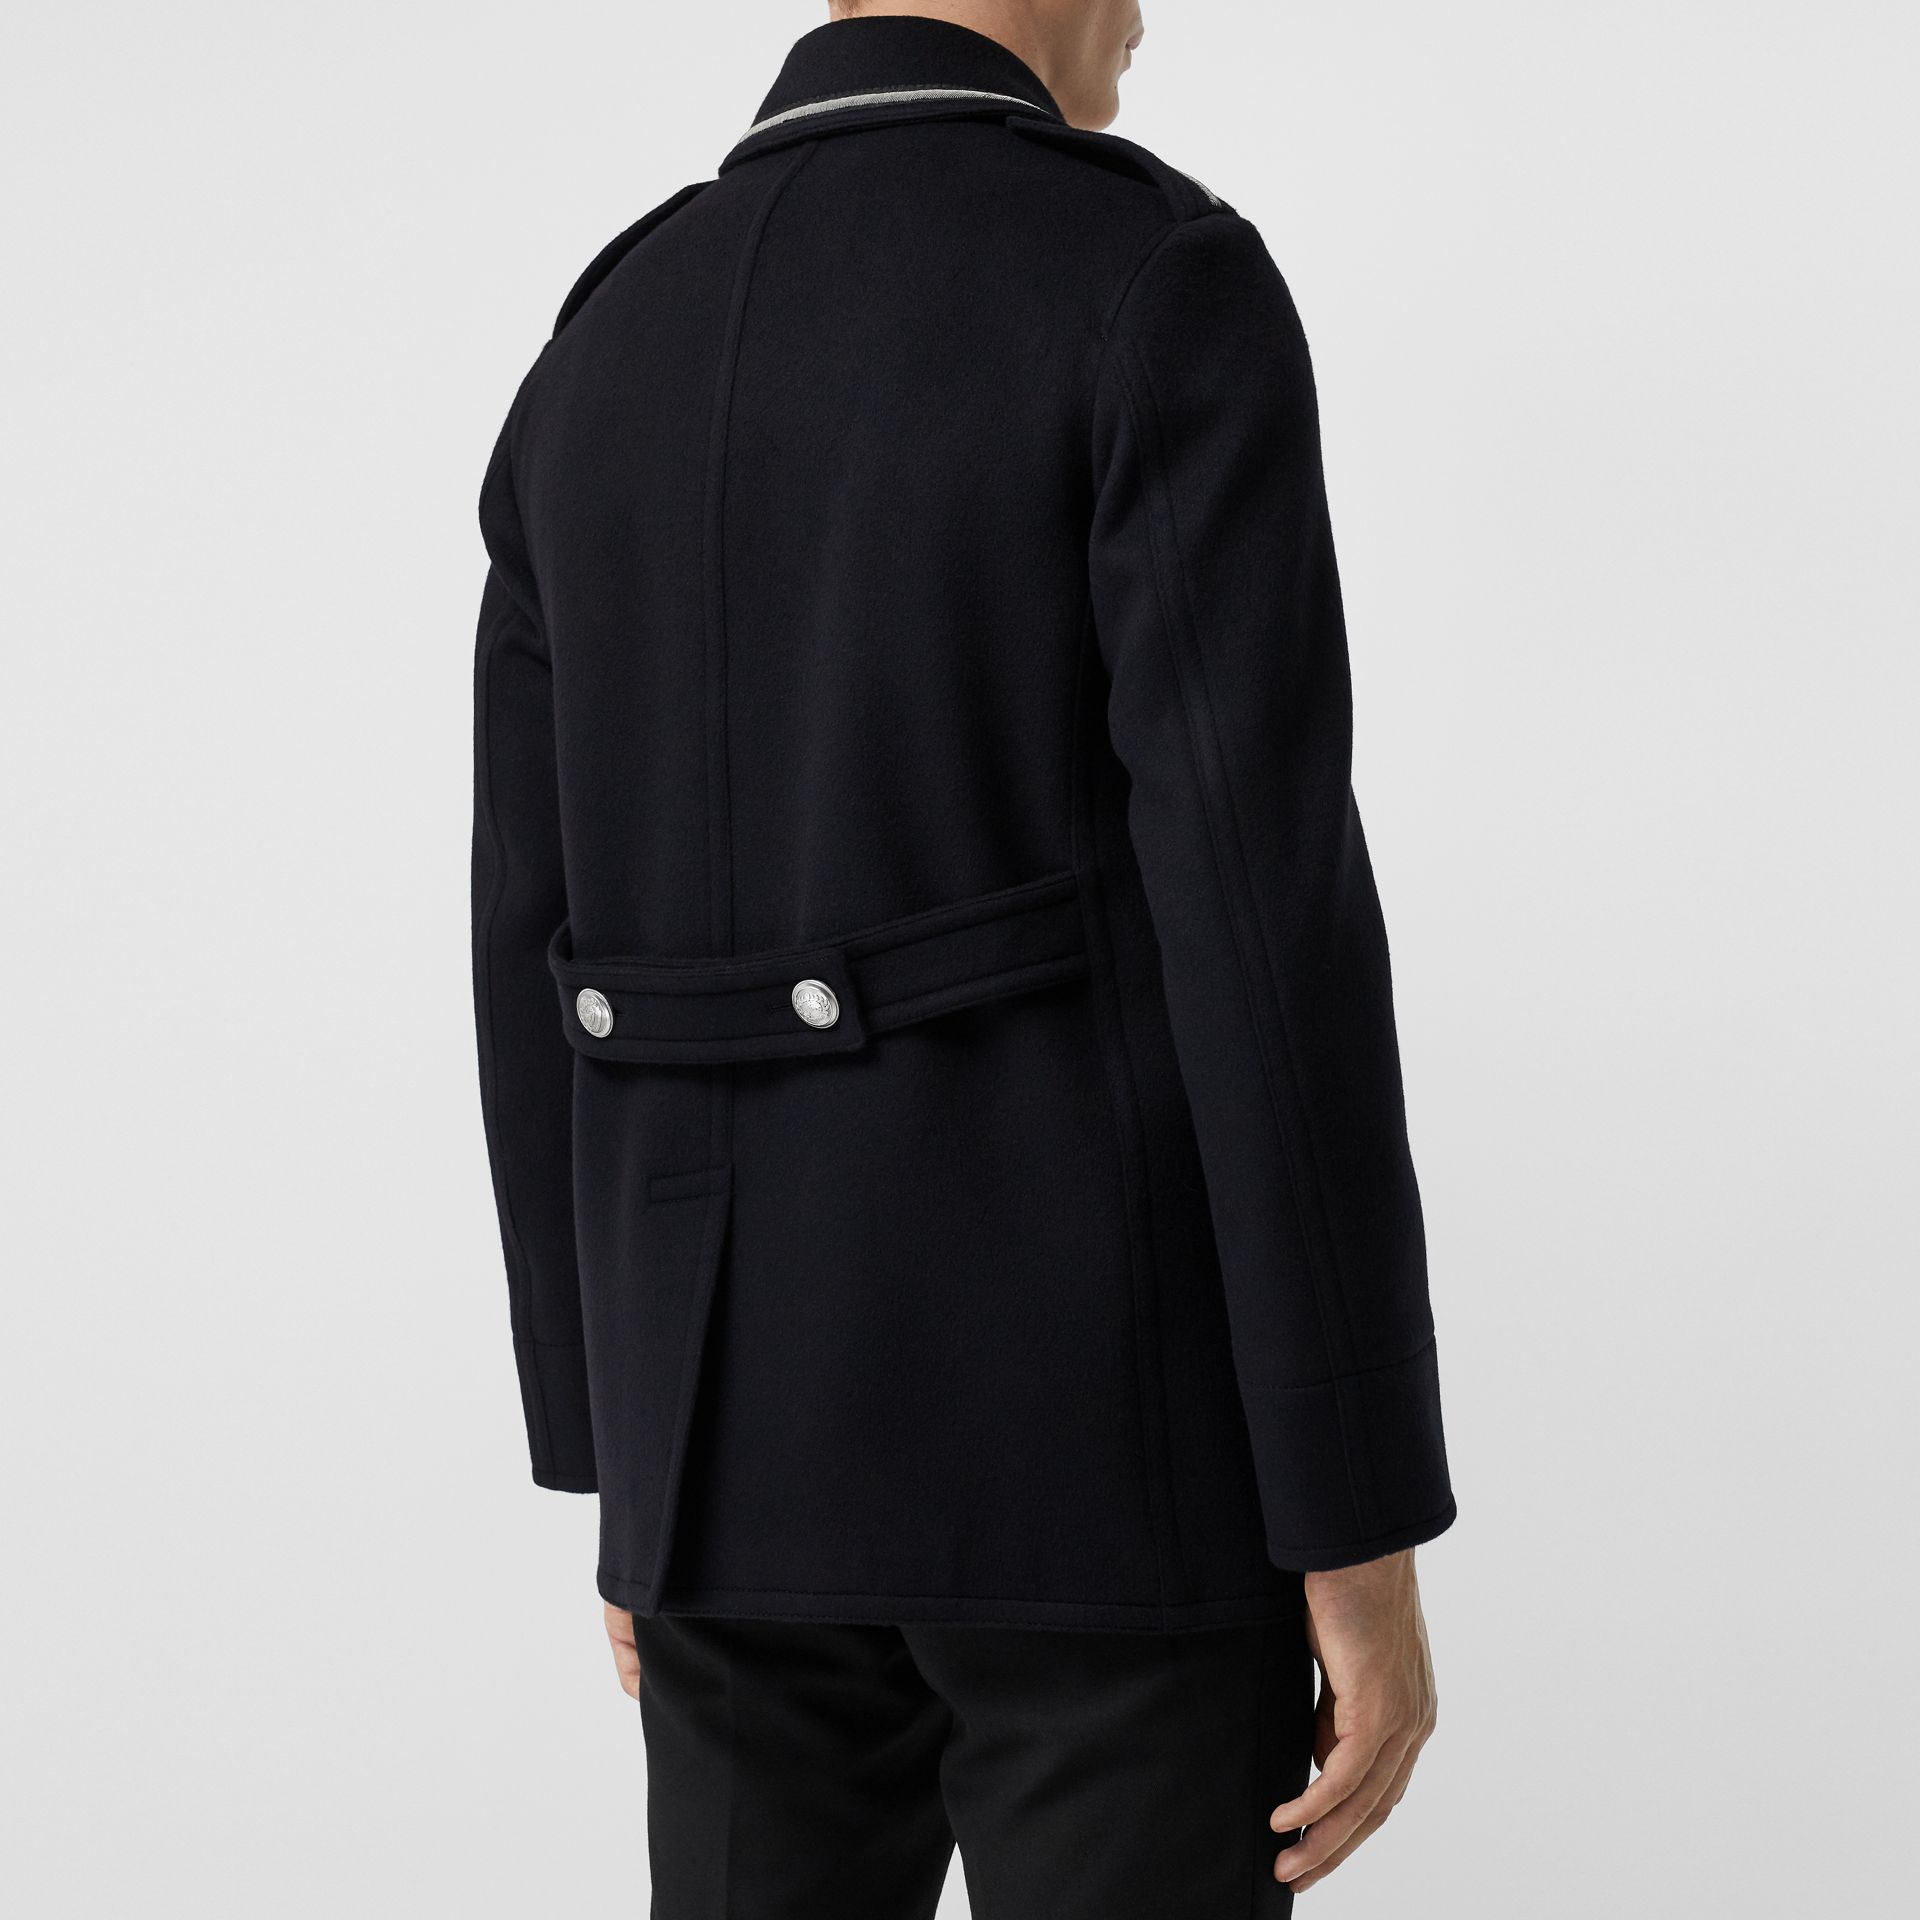 Bullion Wool Cashmere Pea Coat in Dark Navy - Men | Burberry Singapore - gallery image 2